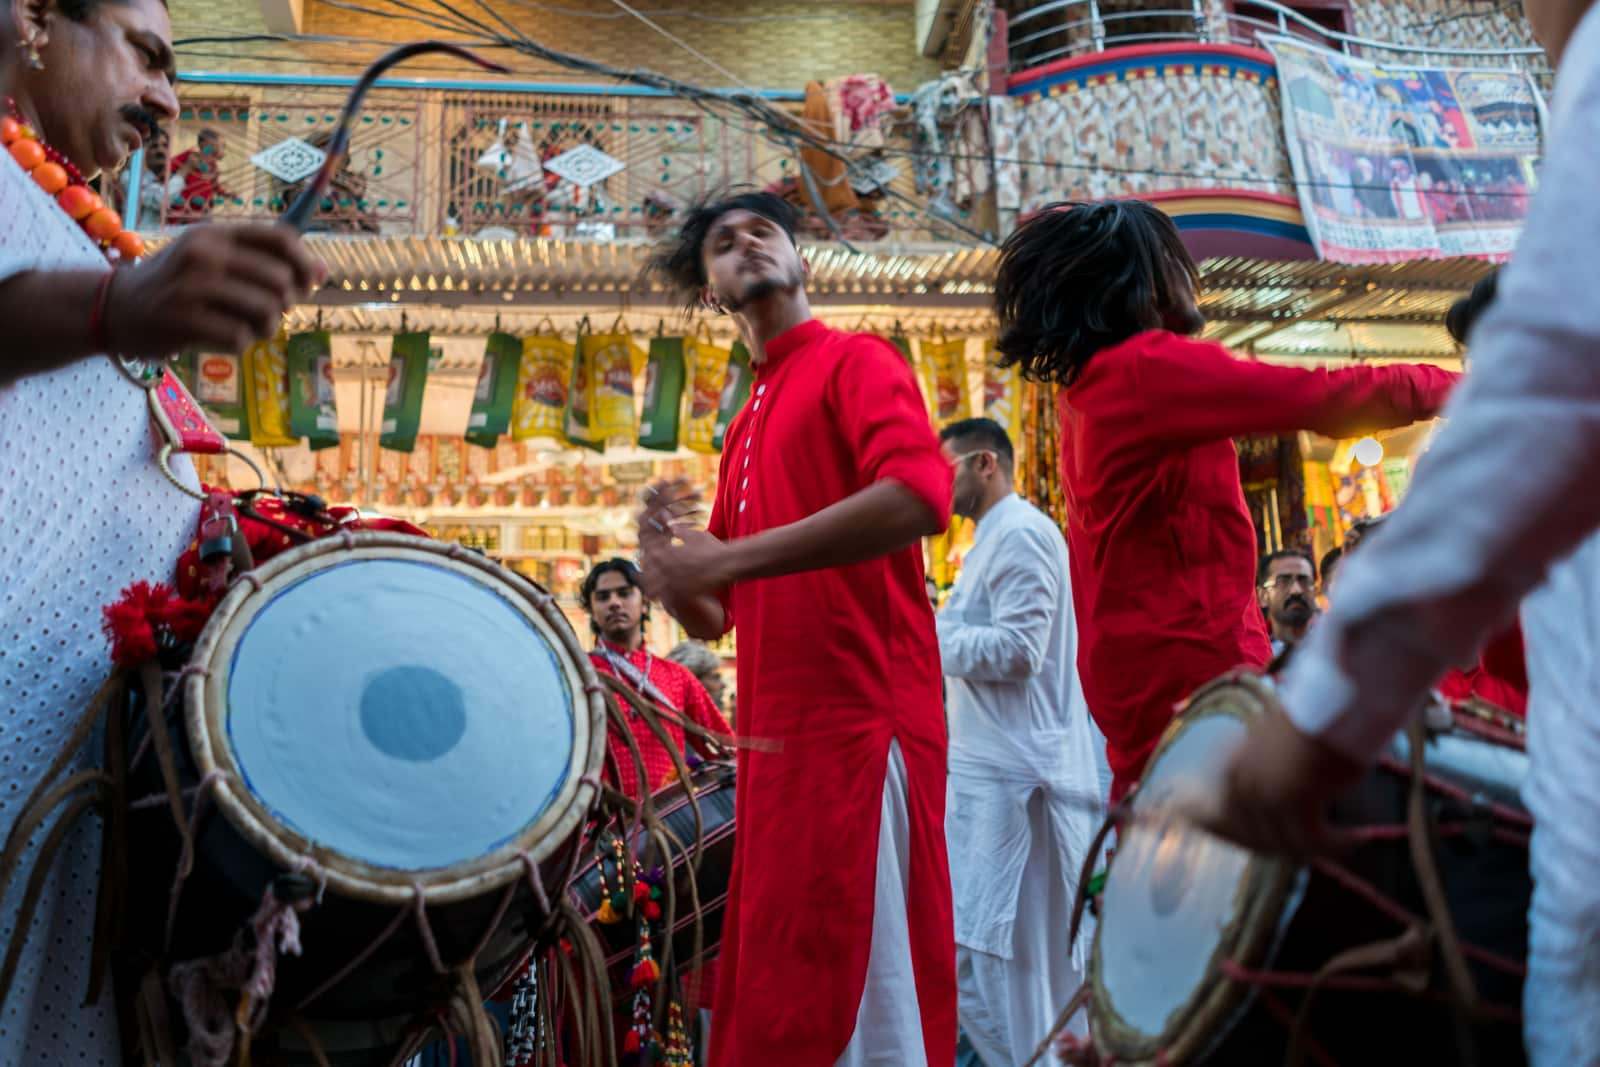 The Urs of Lal Shahbaz Qalandar in Sehwan, Pakistan - Boy in red dancing to drums outside the shrine - Lost With Purpose travel blog